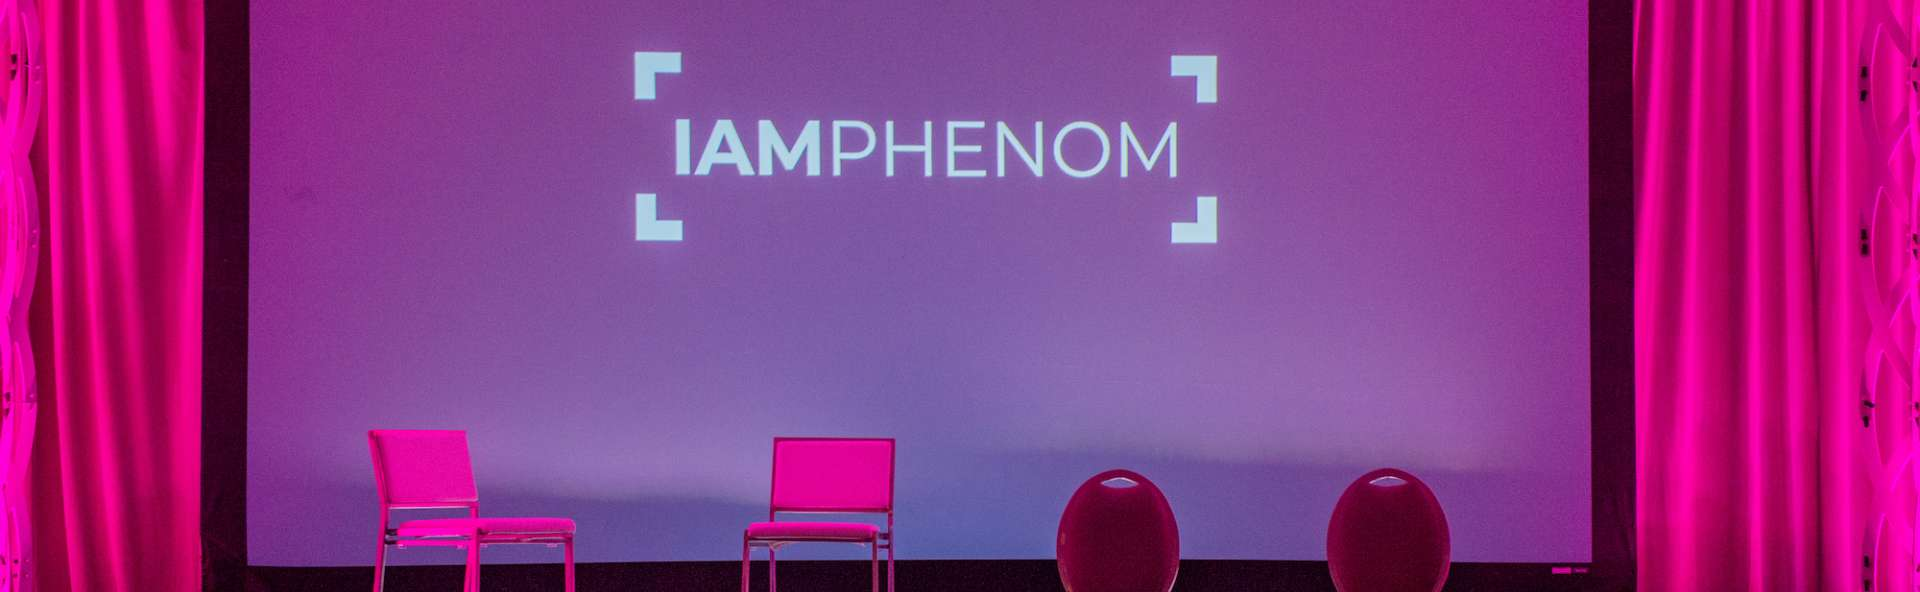 IAMPHENOM stage